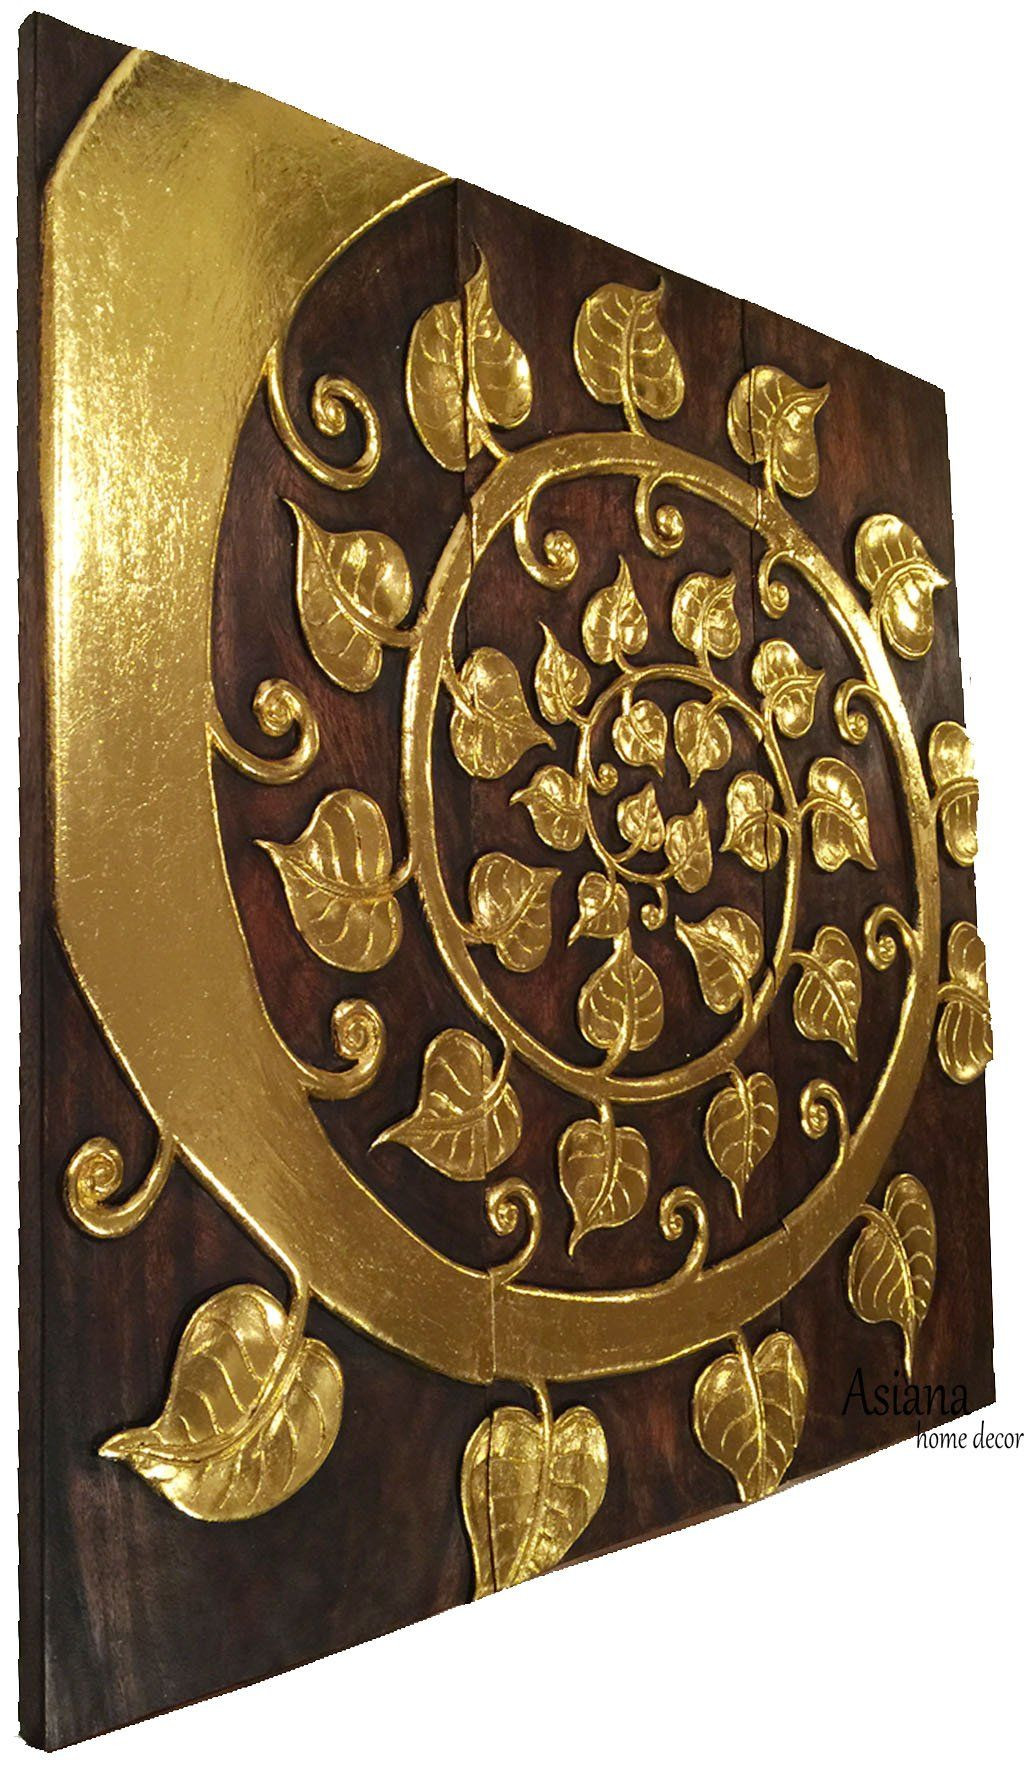 Asian wood wall art panels elegant gold sacred fig leaf relief wood